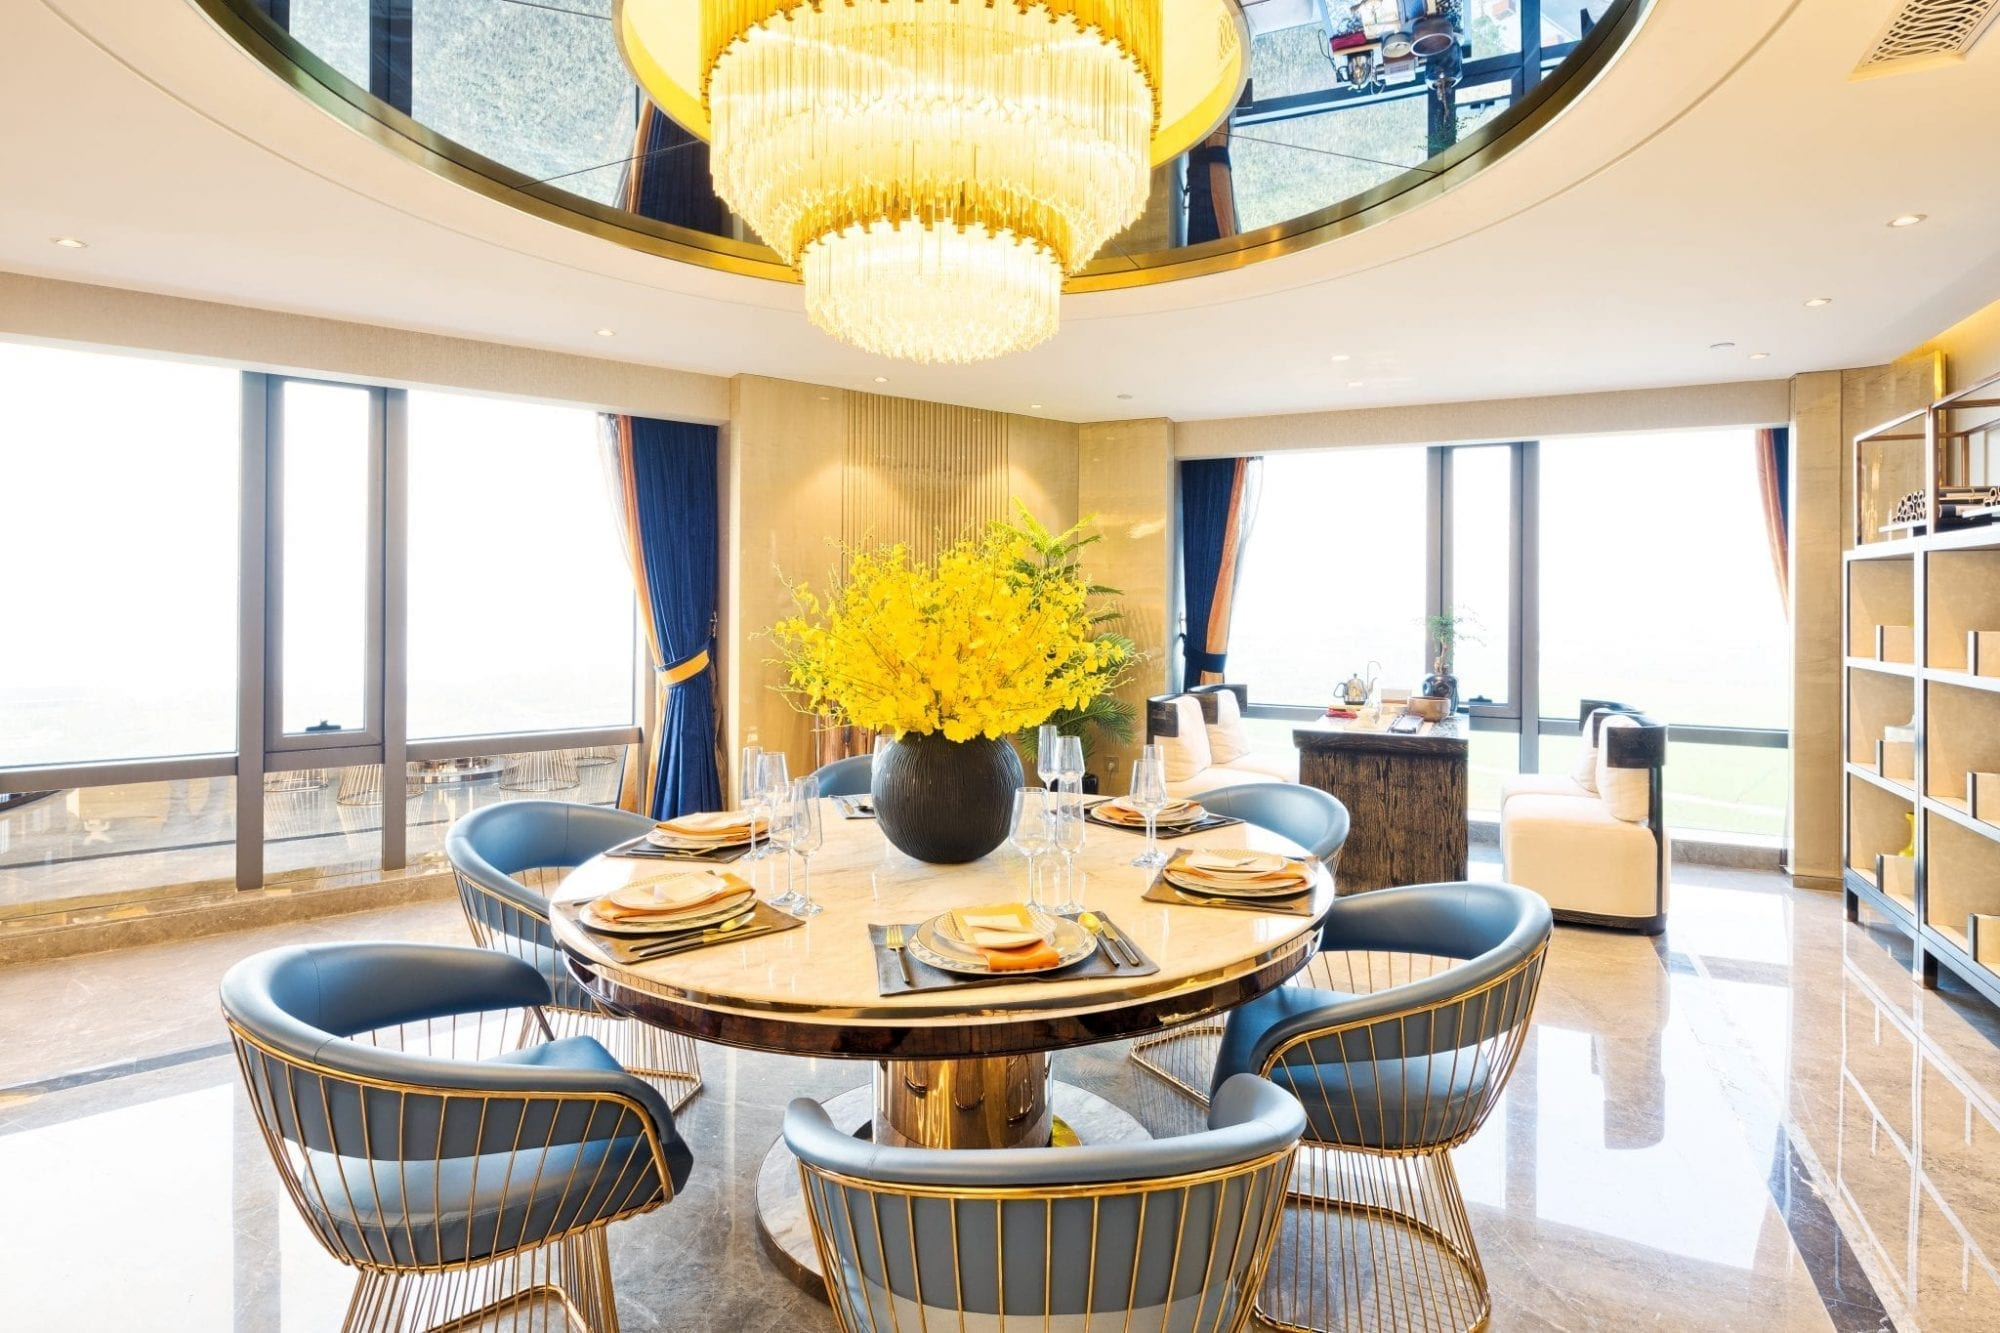 Chandelier cleaning services keep it up chandelier cleaning services arubaitofo Images